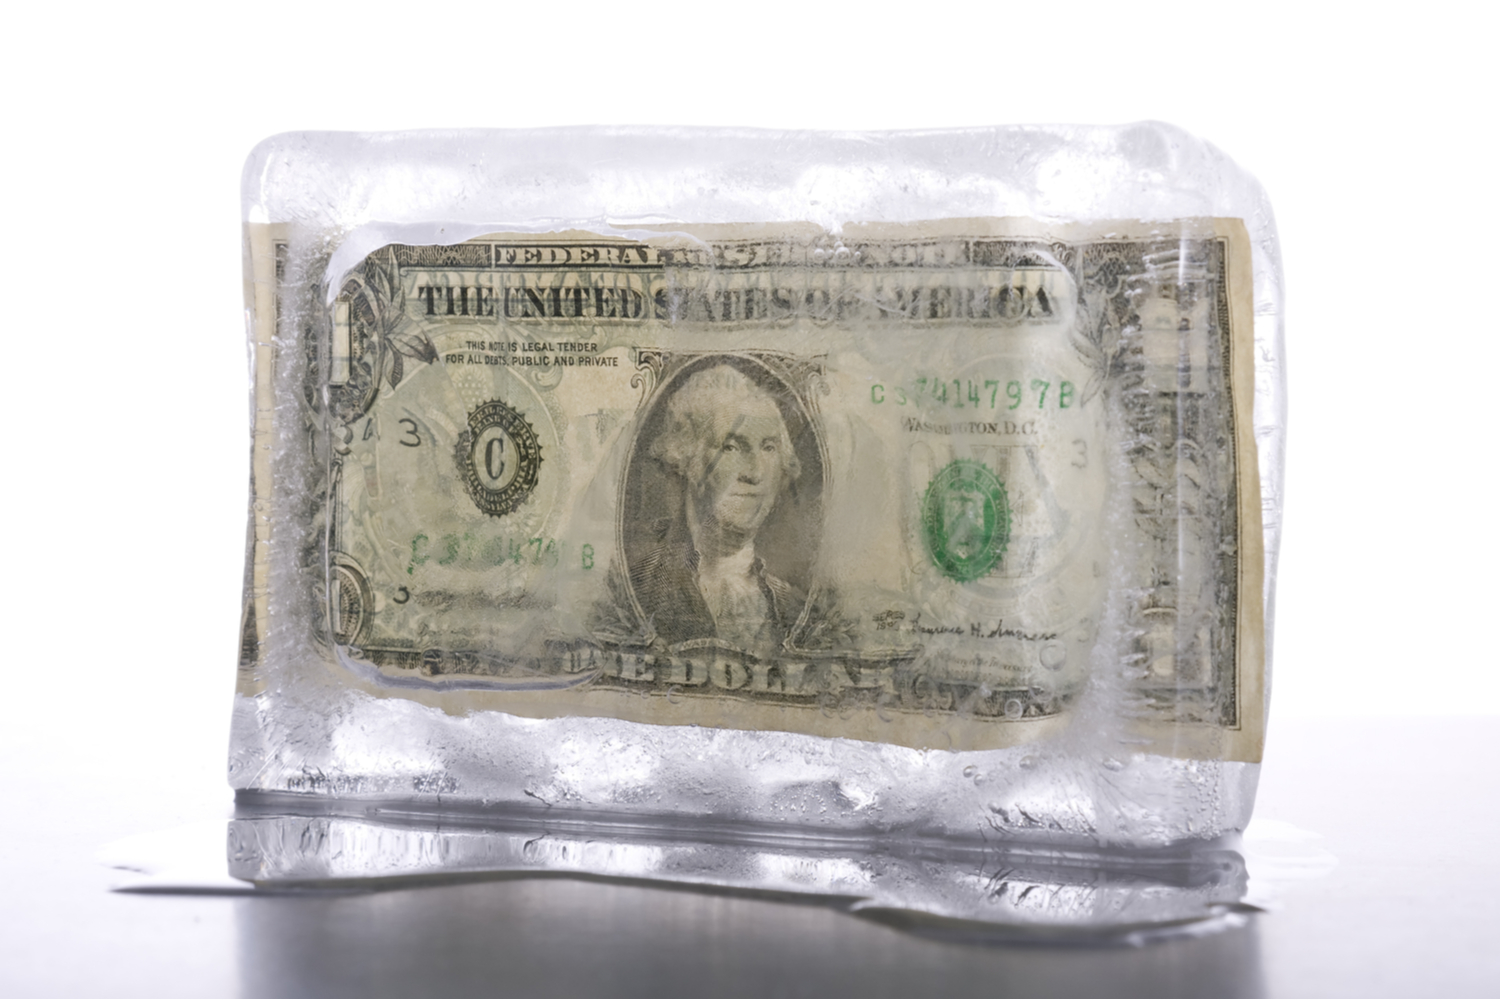 US Court Freezes Assets Linked to Alleged $9M ICO Scam - CoinDesk